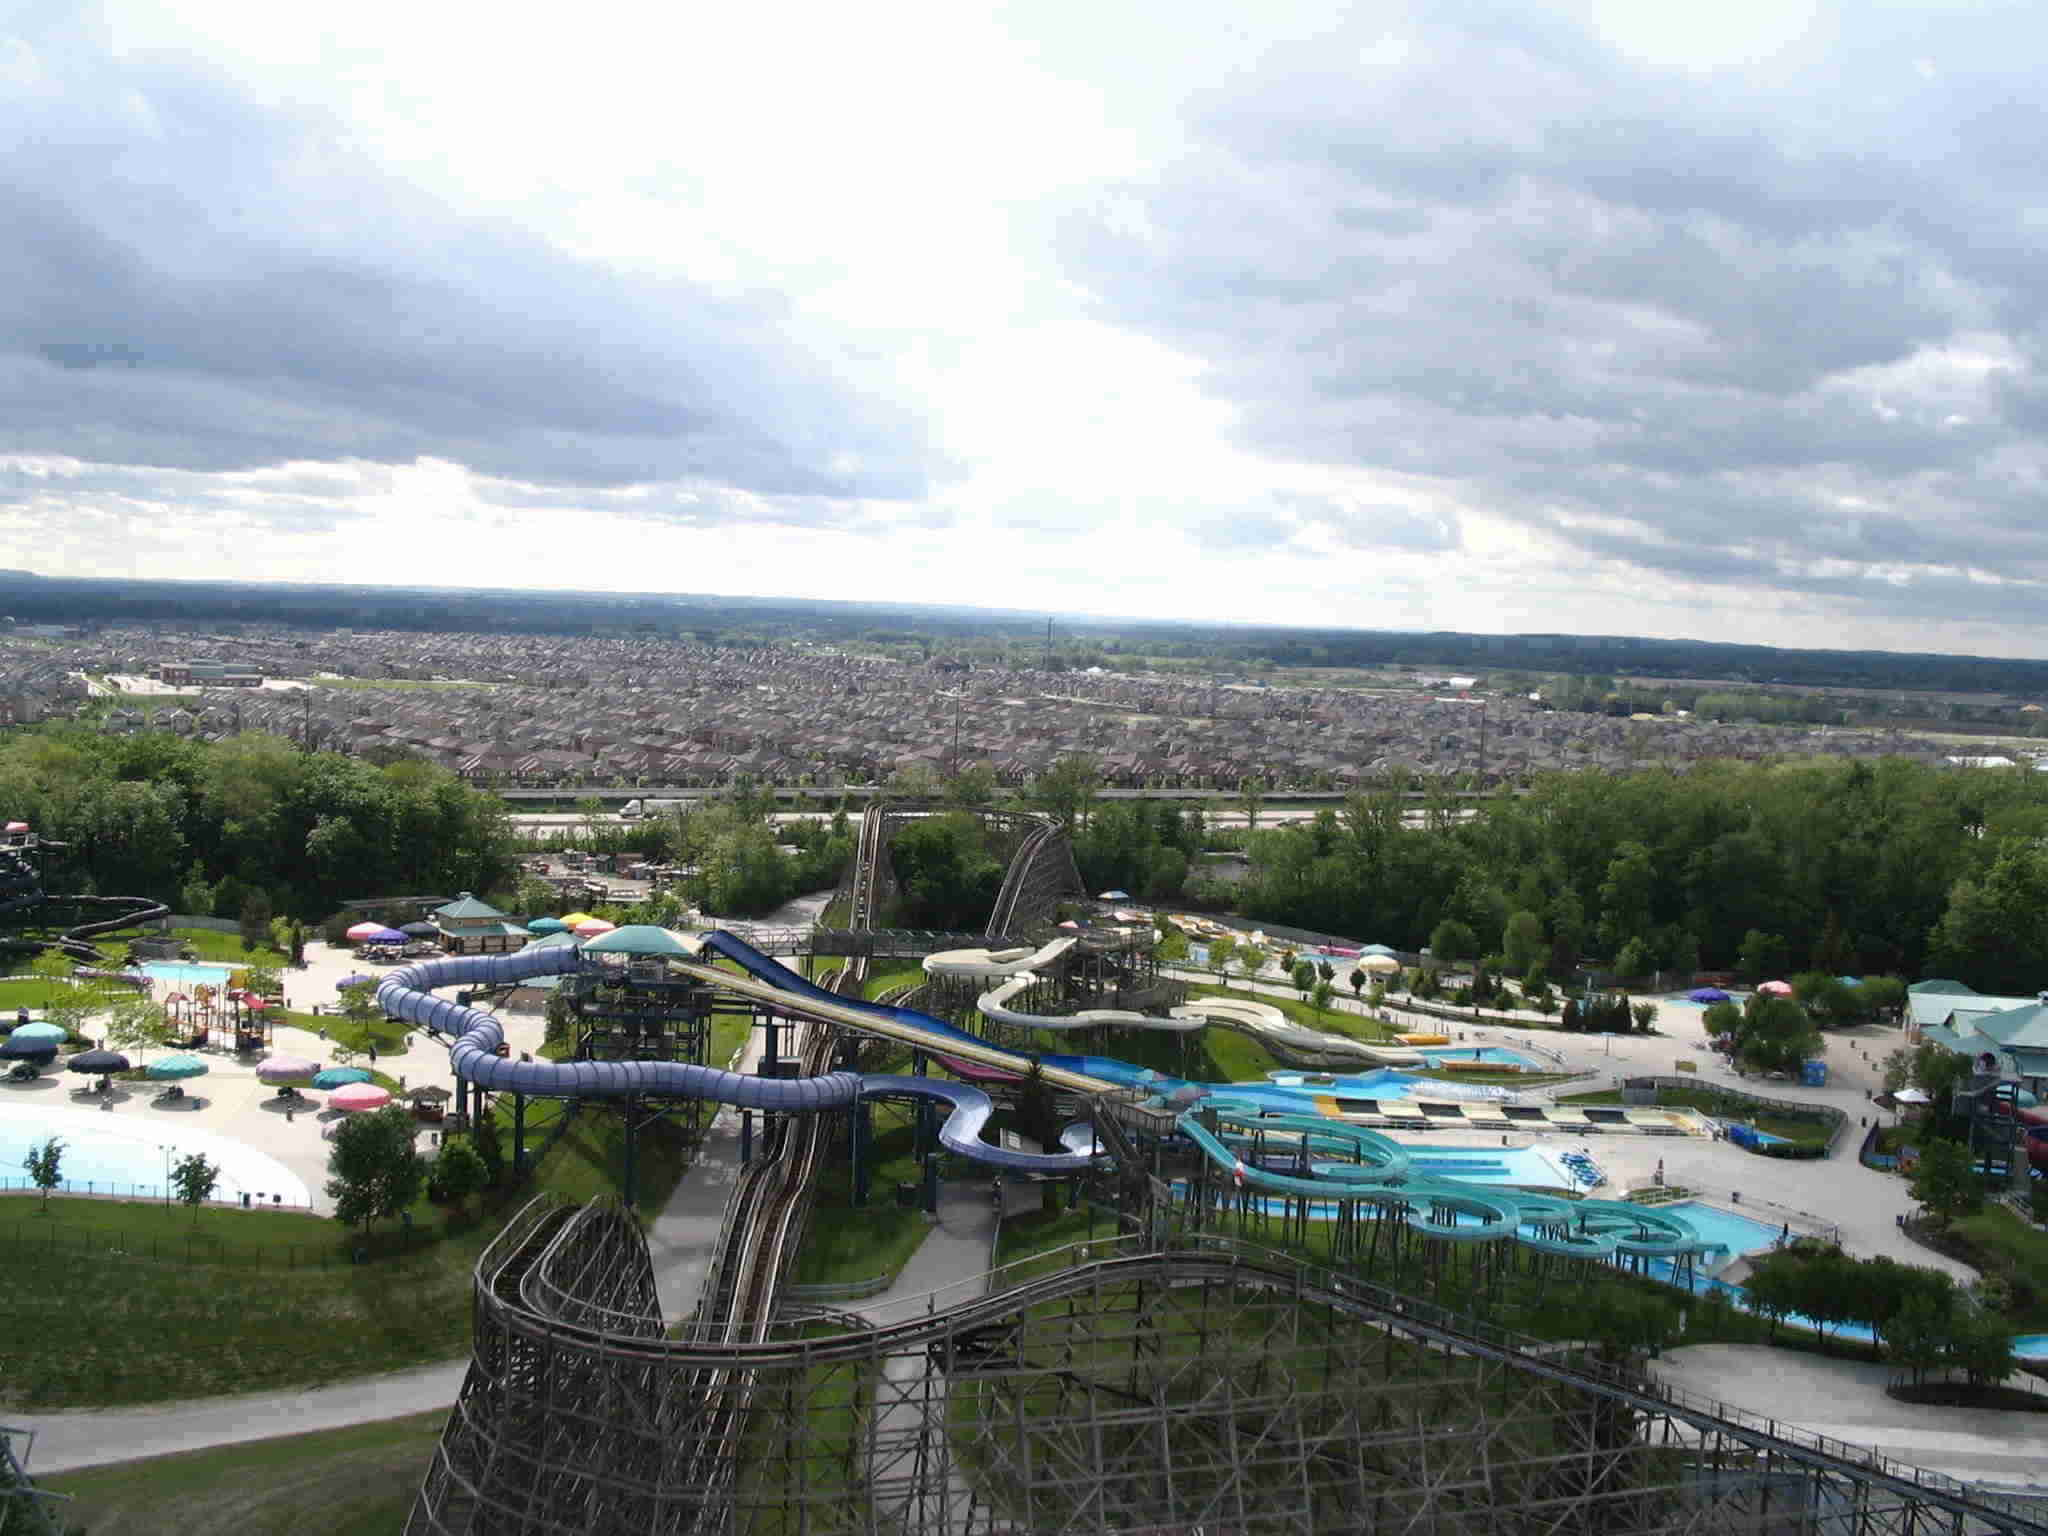 Vaughan as viewed from Behemoth (Canada's Wonderland) By Loozrboy - http://www.flickr.com/photos/loozrboy/2546962668/, CC BY-SA 2.0